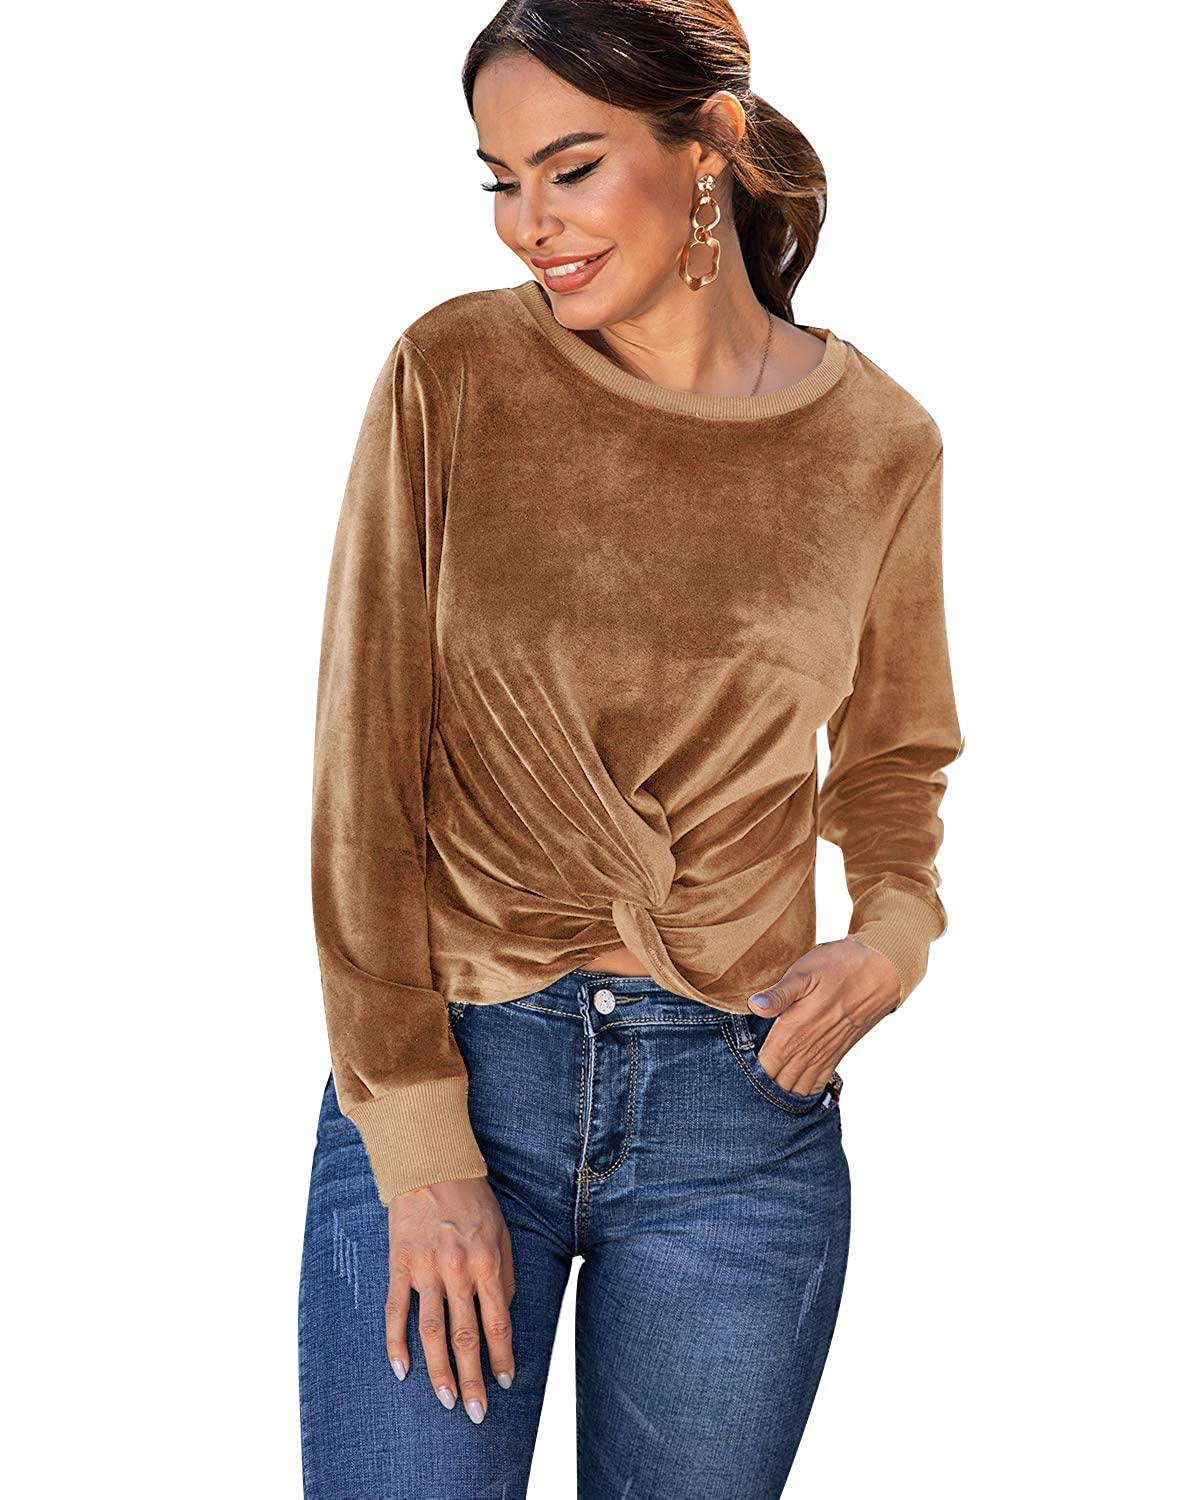 LANISEN Womens Long Sleeve Velvet T Shirts Casual Crew Neck Twist Knot Solid Blouses Tops